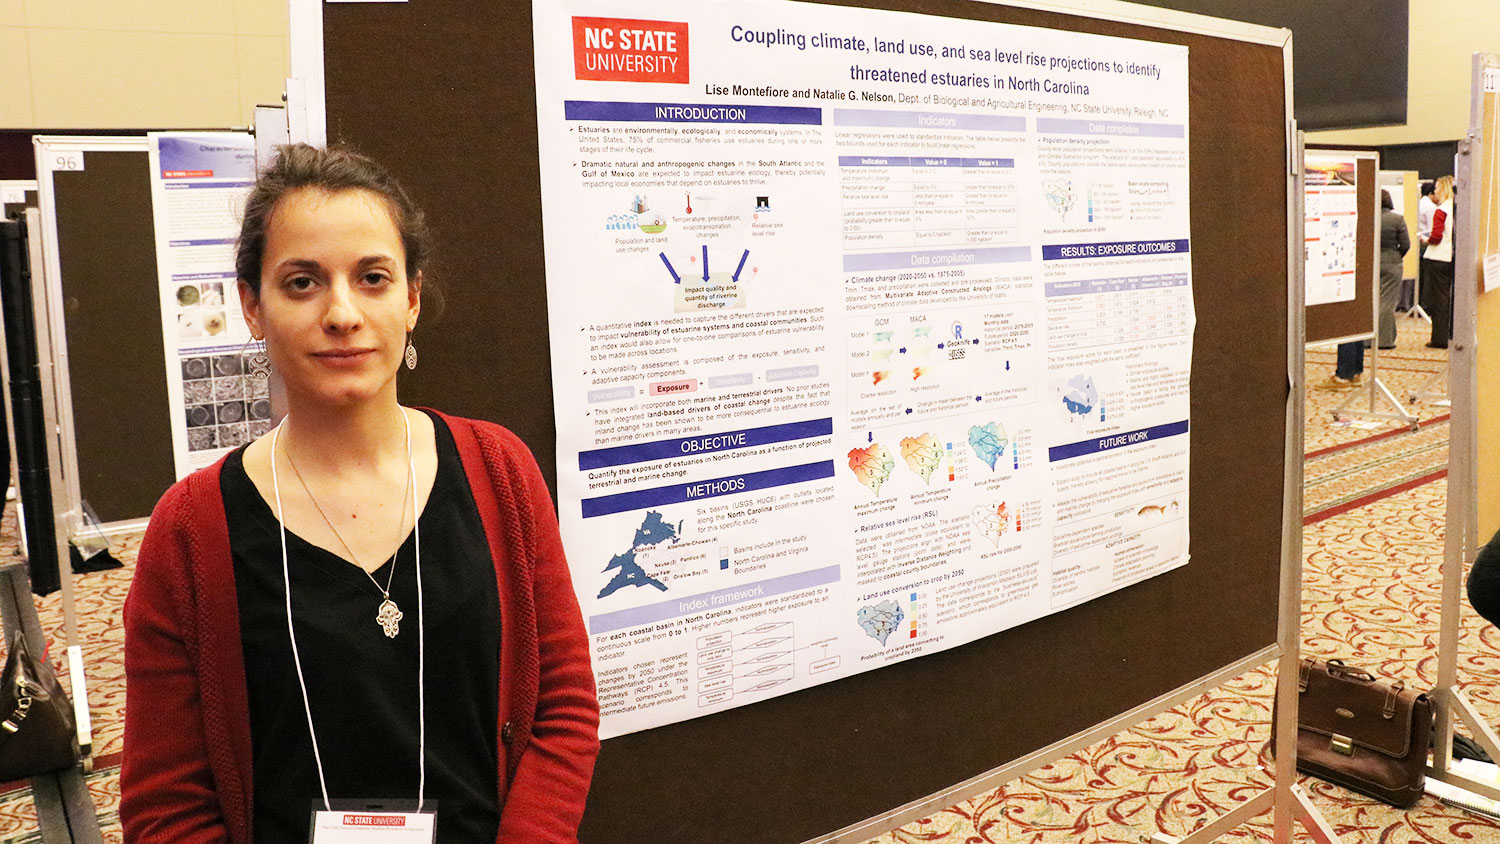 NC State Ph.D. student Lisa Montefiore